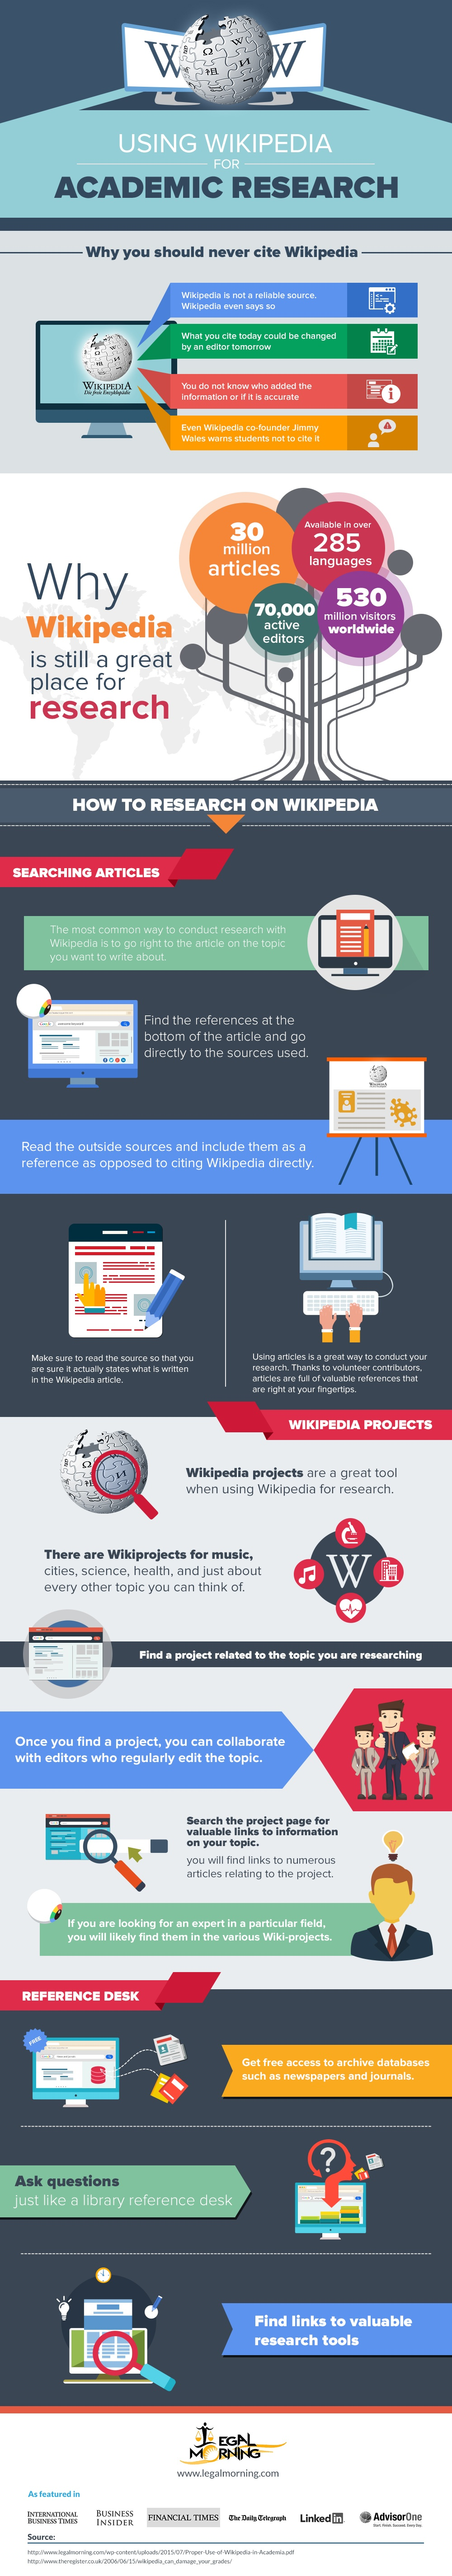 Using Wikipedia in an Academic Setting Infographic